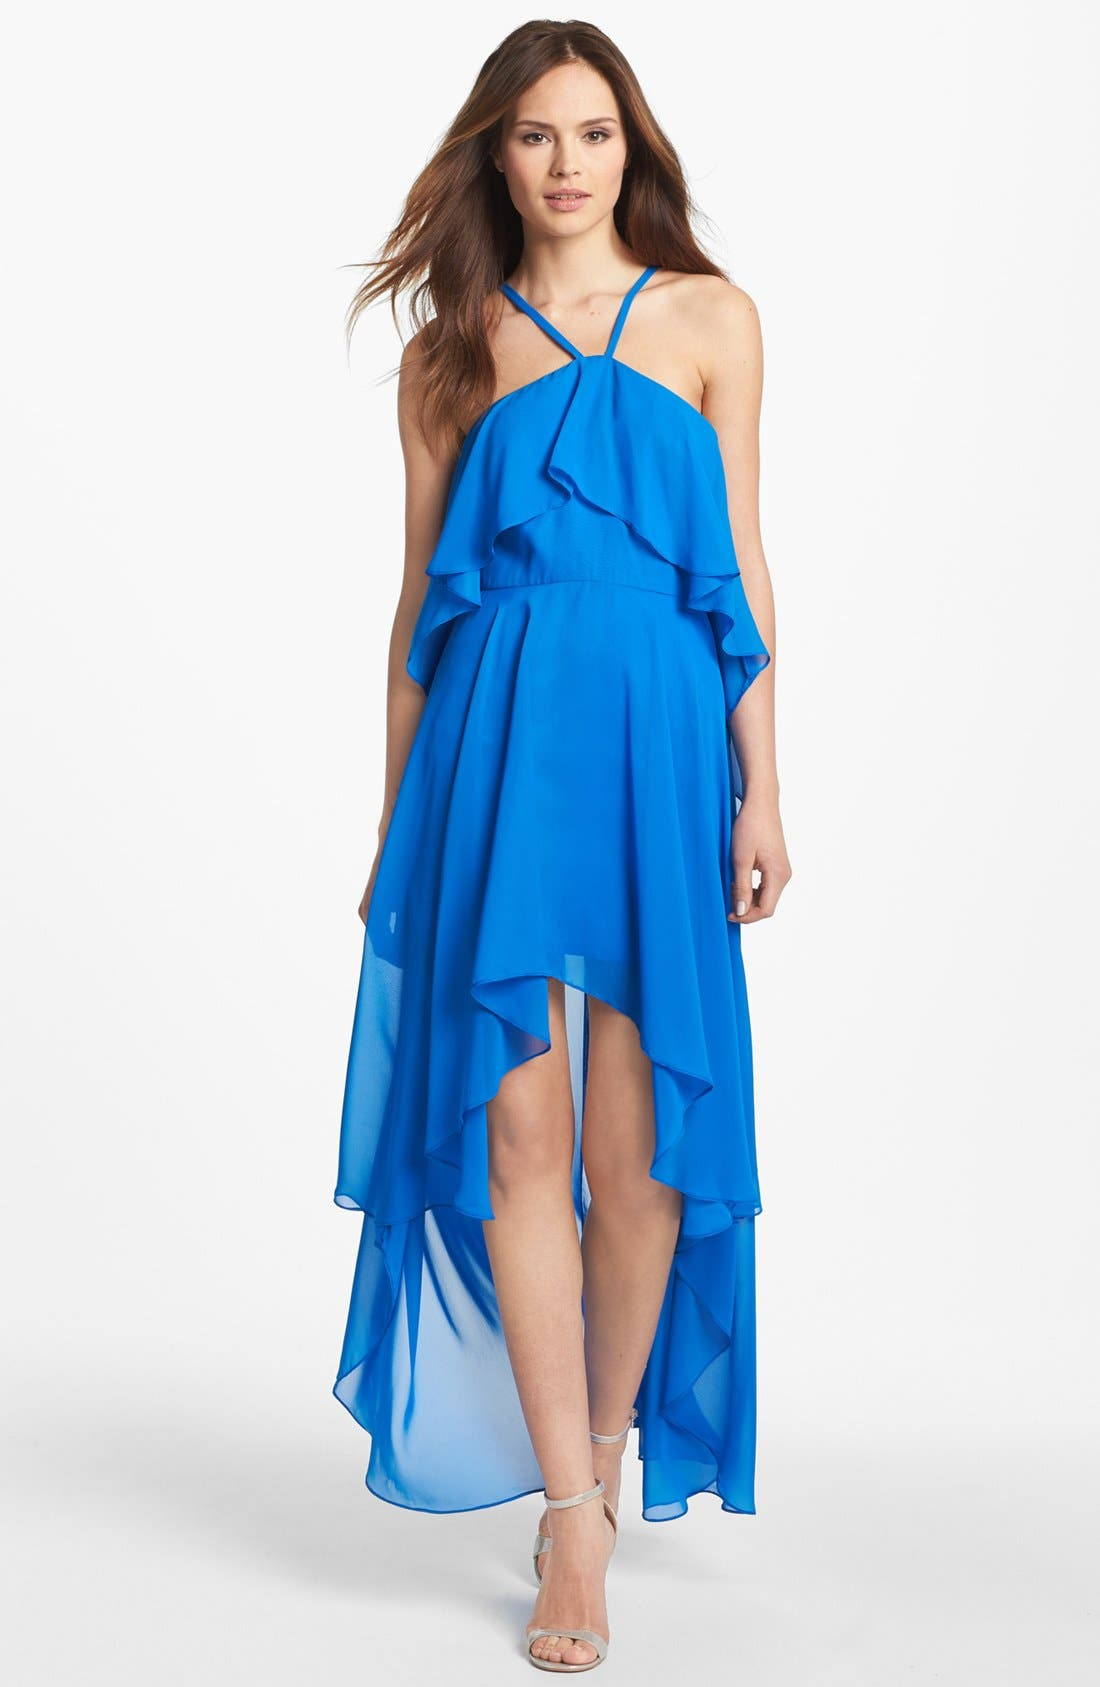 Main Image - Hailey by Adrianna Papell Ruffled High/Low Chiffon Dress (Online Only)